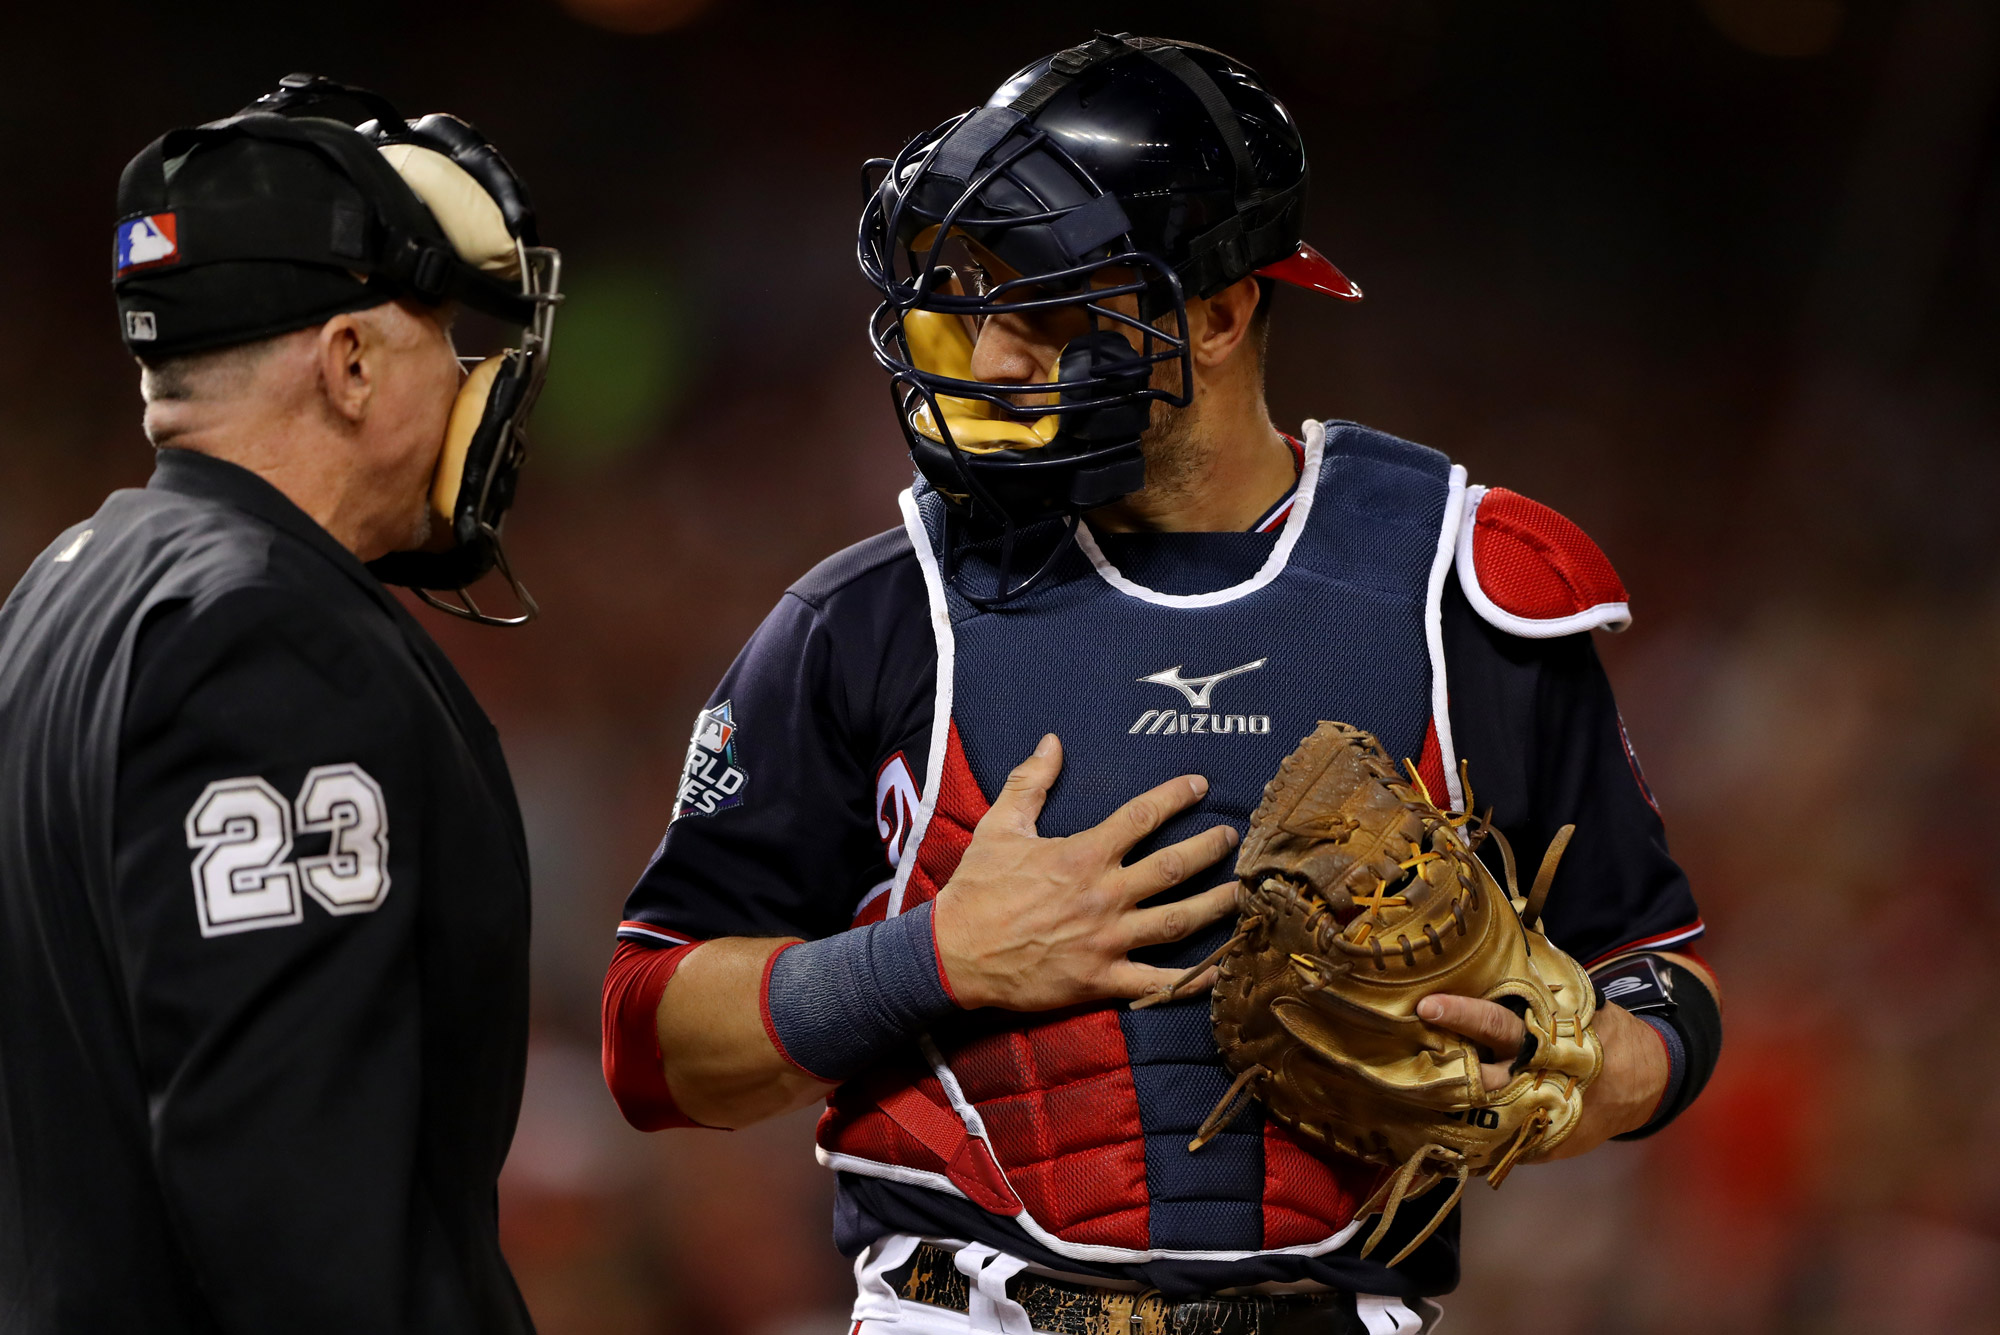 Yan Gomes #10 of the Washington Nationals argues a call with Home Plate umpire Lance Barksdale #23 during Game 5 of the 2019 World Series between the Houston Astros and the Washington Nationals